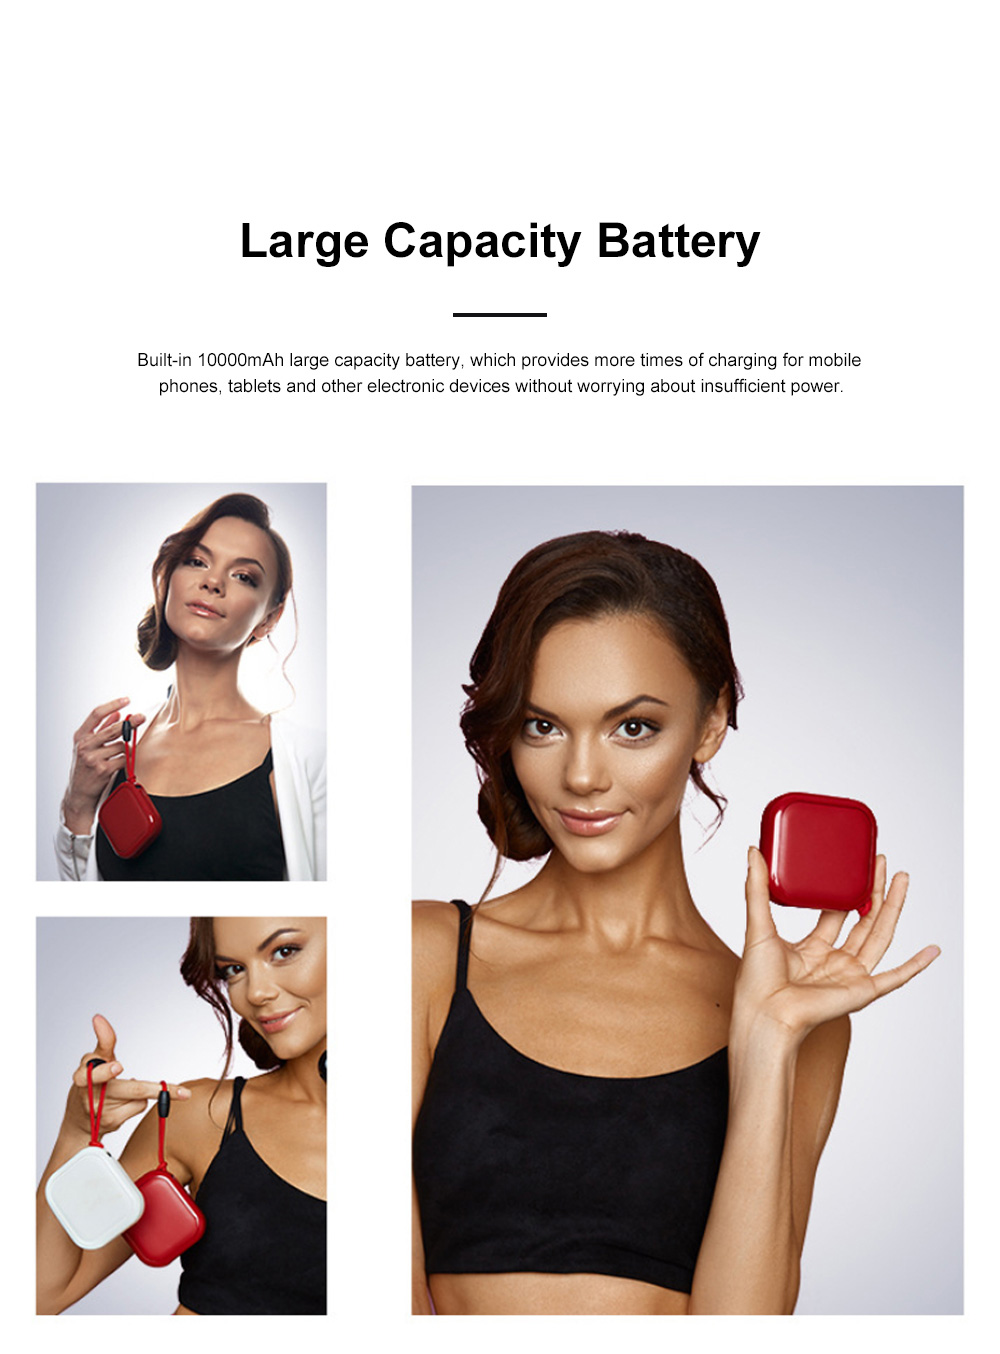 MIPOW Portable QI Wireless Power Bank 10000mAh Dual Use Support Wired Mobile Charger for Phone Tablet Charging 6